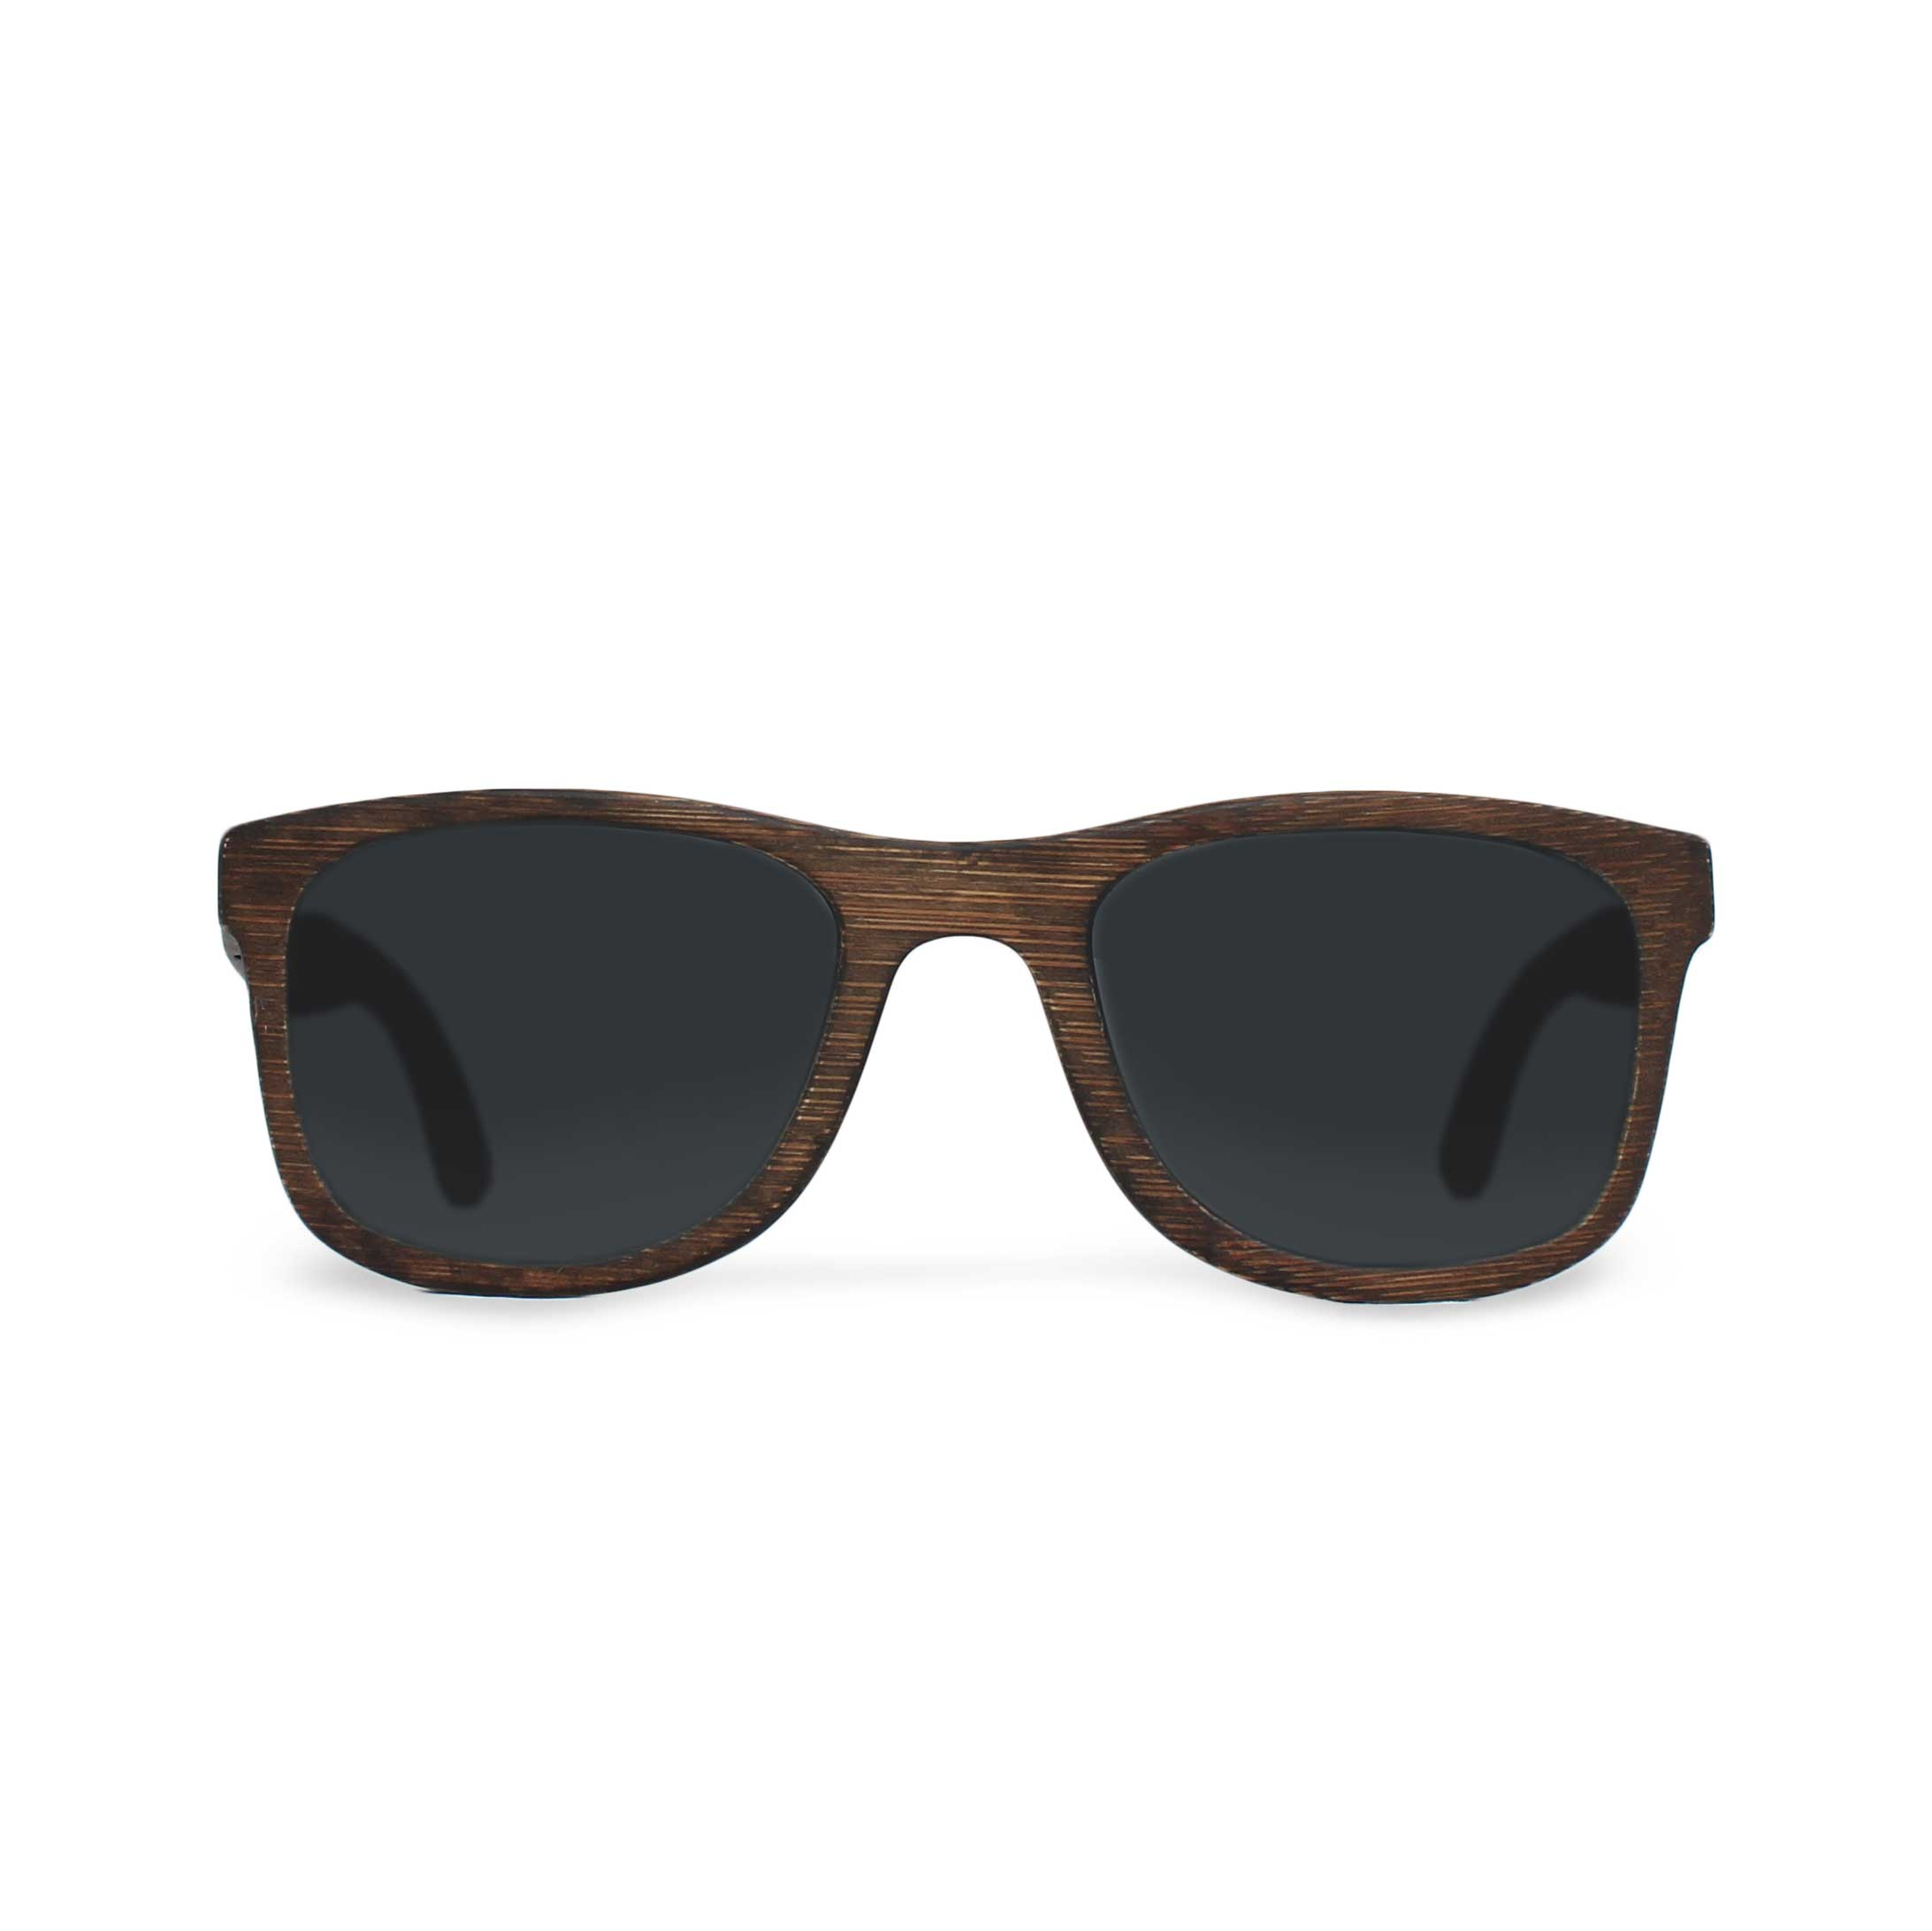 Wooden Frame Sunglasses - Murielo